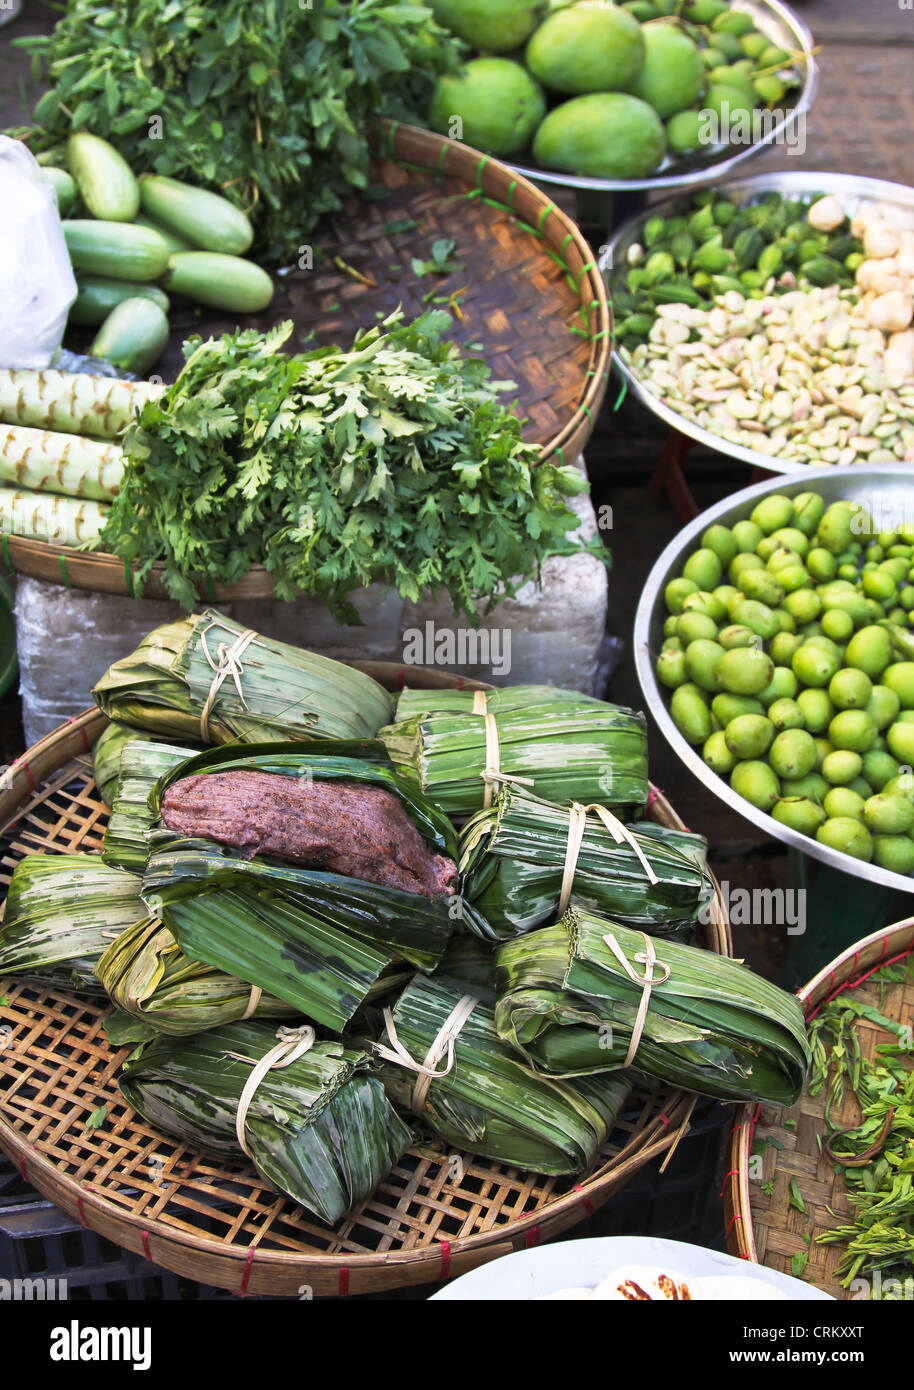 Food and vegetable stalls in a Market,Yangon,Burma - Stock Image